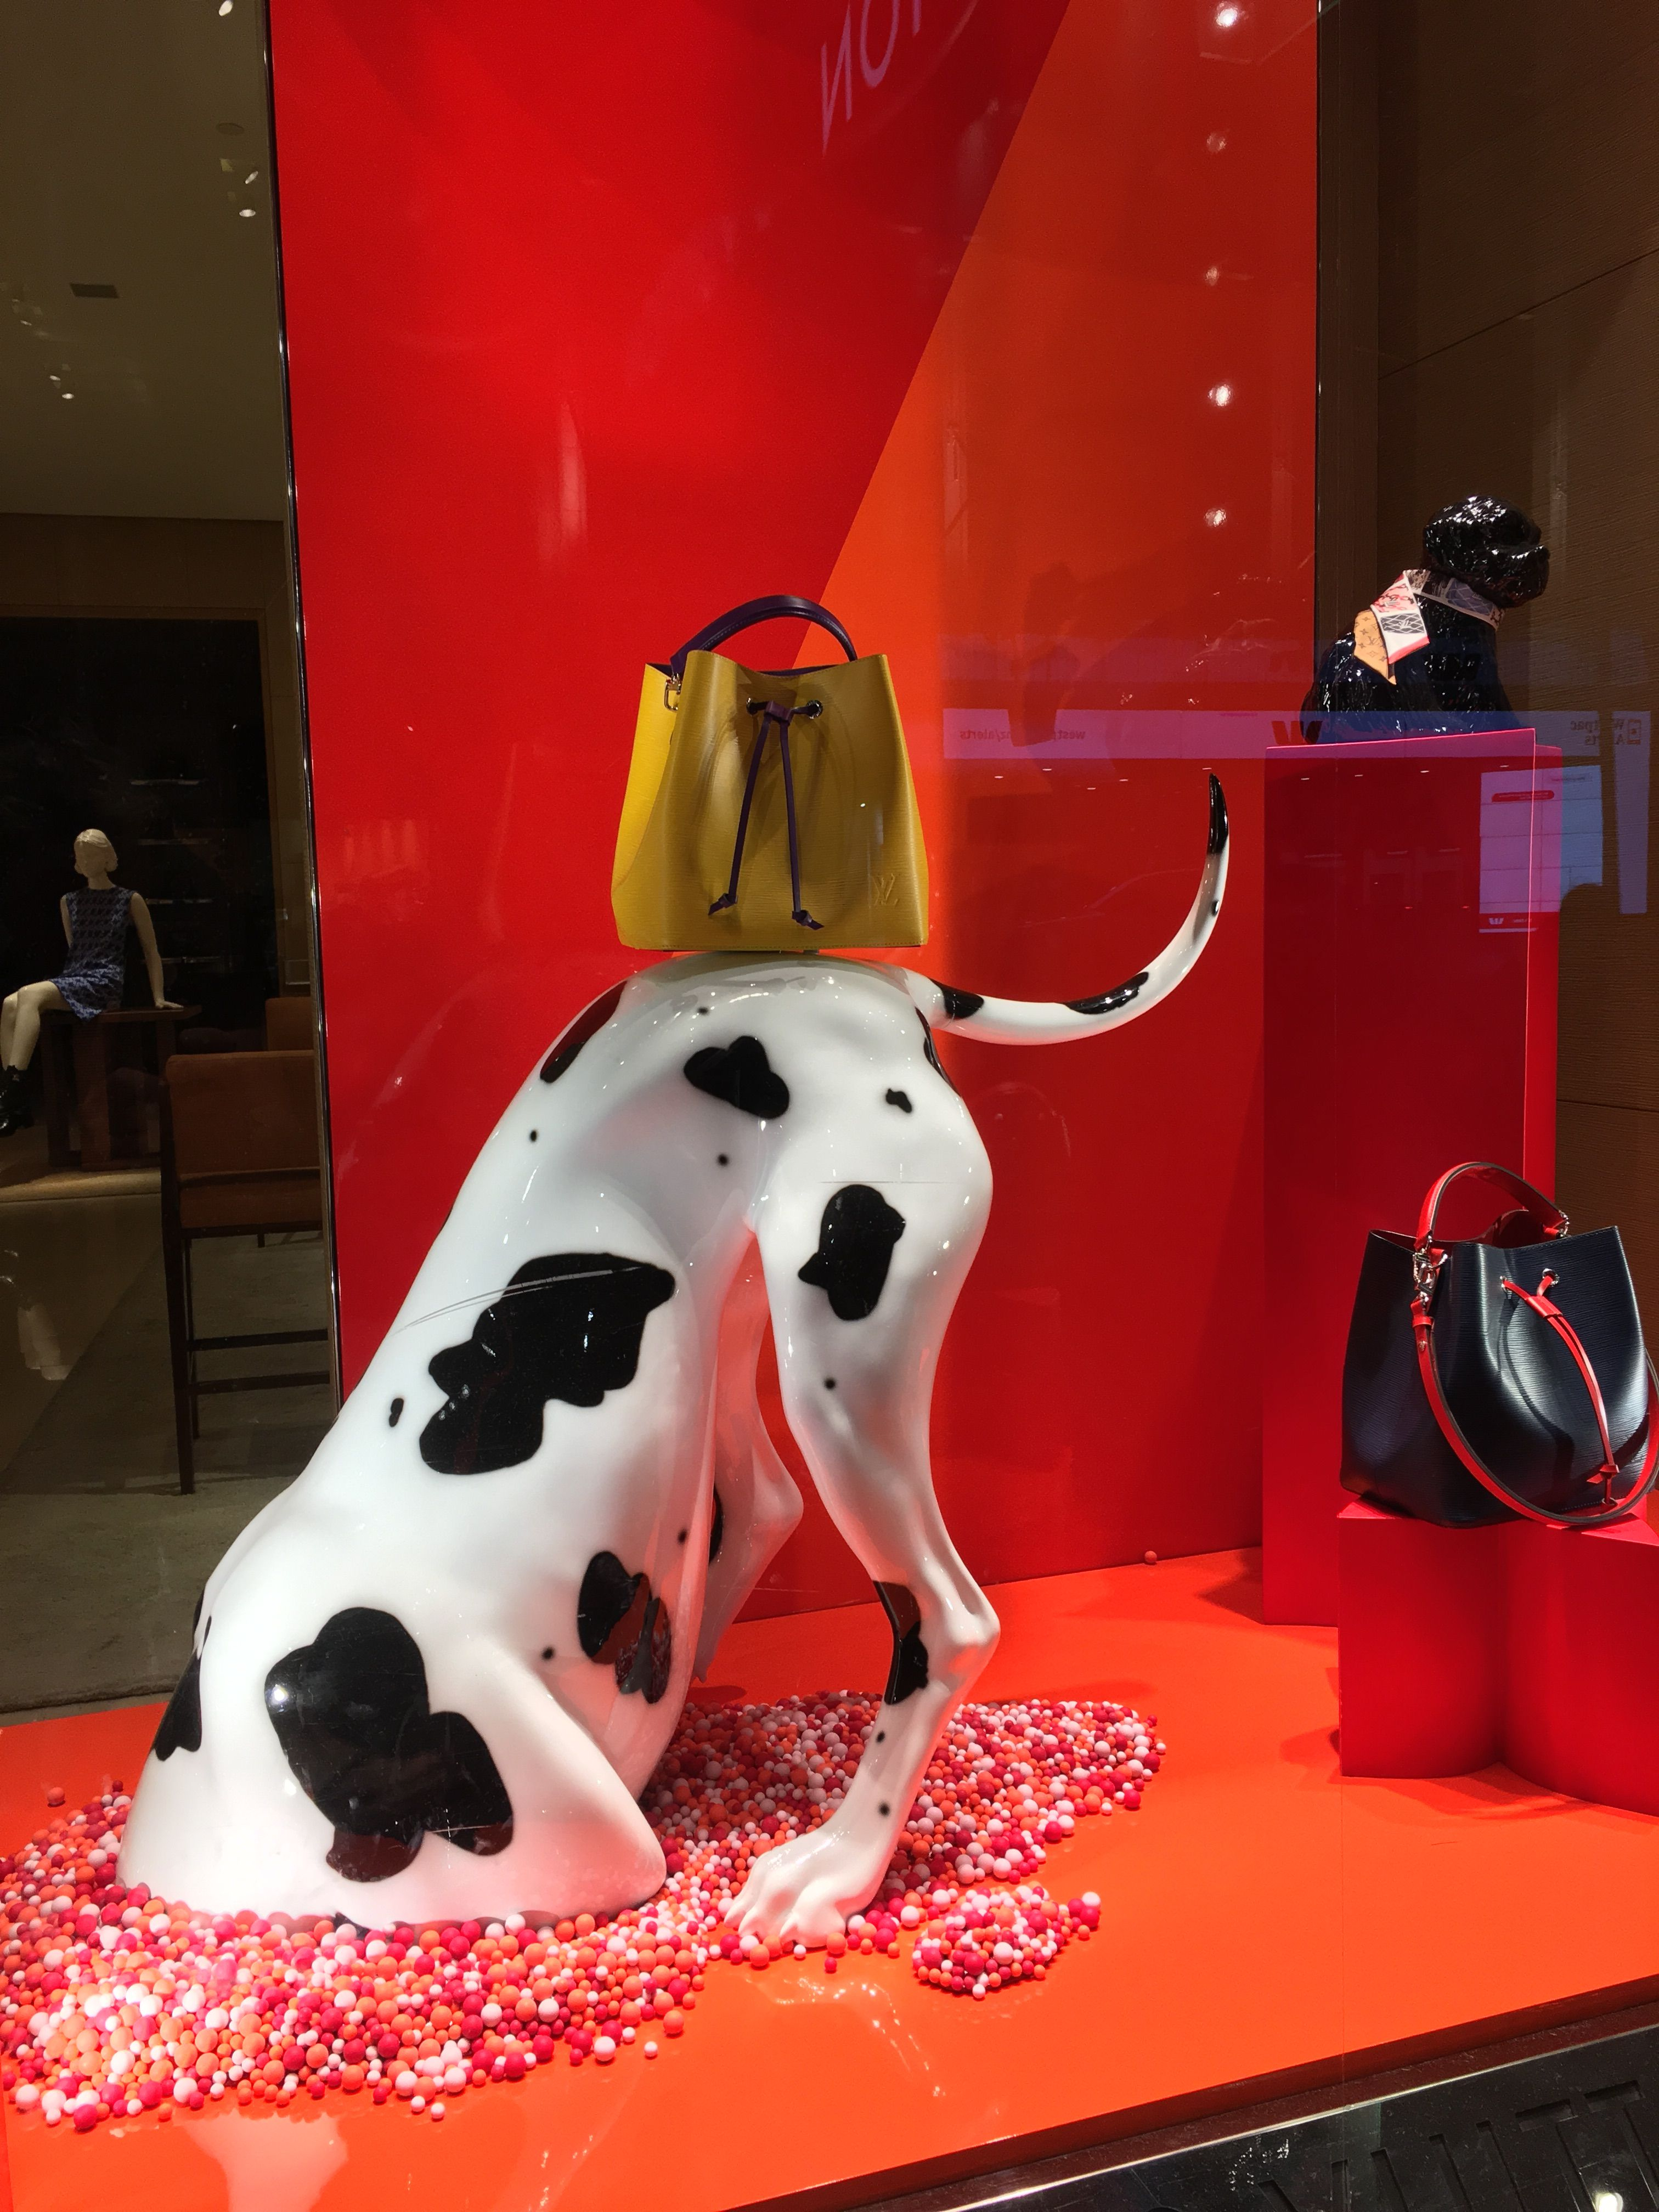 Louis Vuitton Queen Street Auckland Cbd New Zealand The Digging Est Dog The Year Of The Dog Photo Uploaded By Ton Dog Window Window Display Dog Years